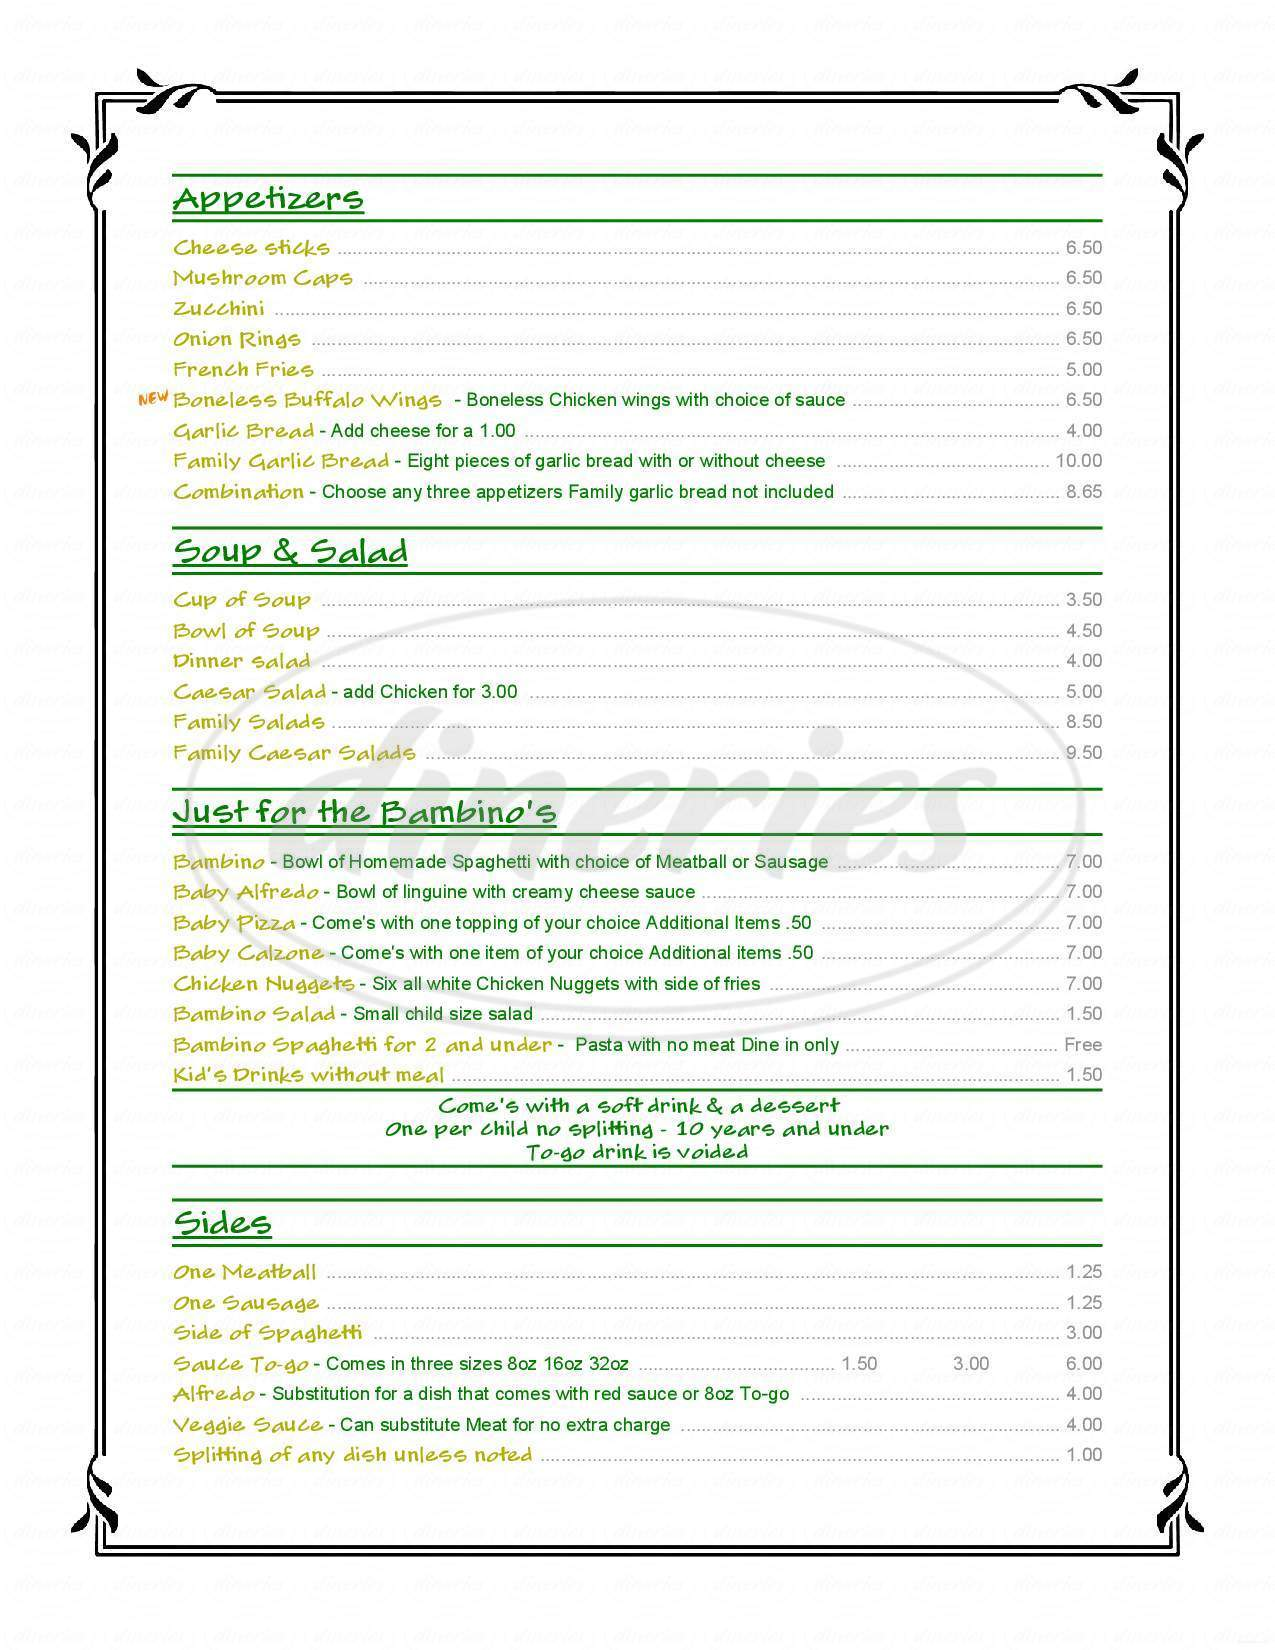 menu for Bova's Italian Restaurant